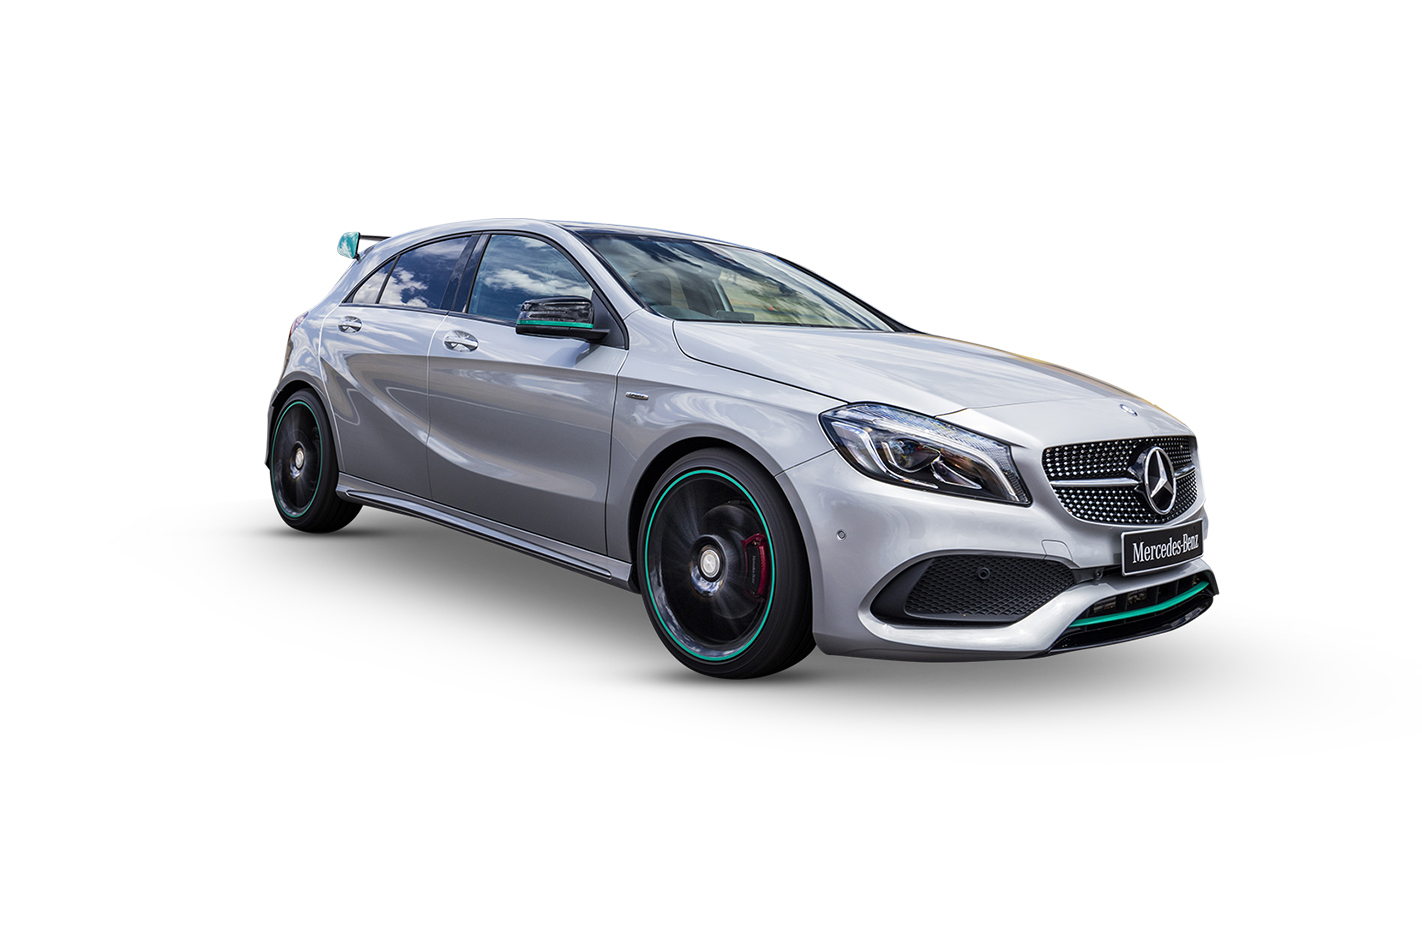 2019 Mercedes Benz A 250 Sport 4matic 2 0l 4cyl Petrol Turbocharged Automatic Hatchback